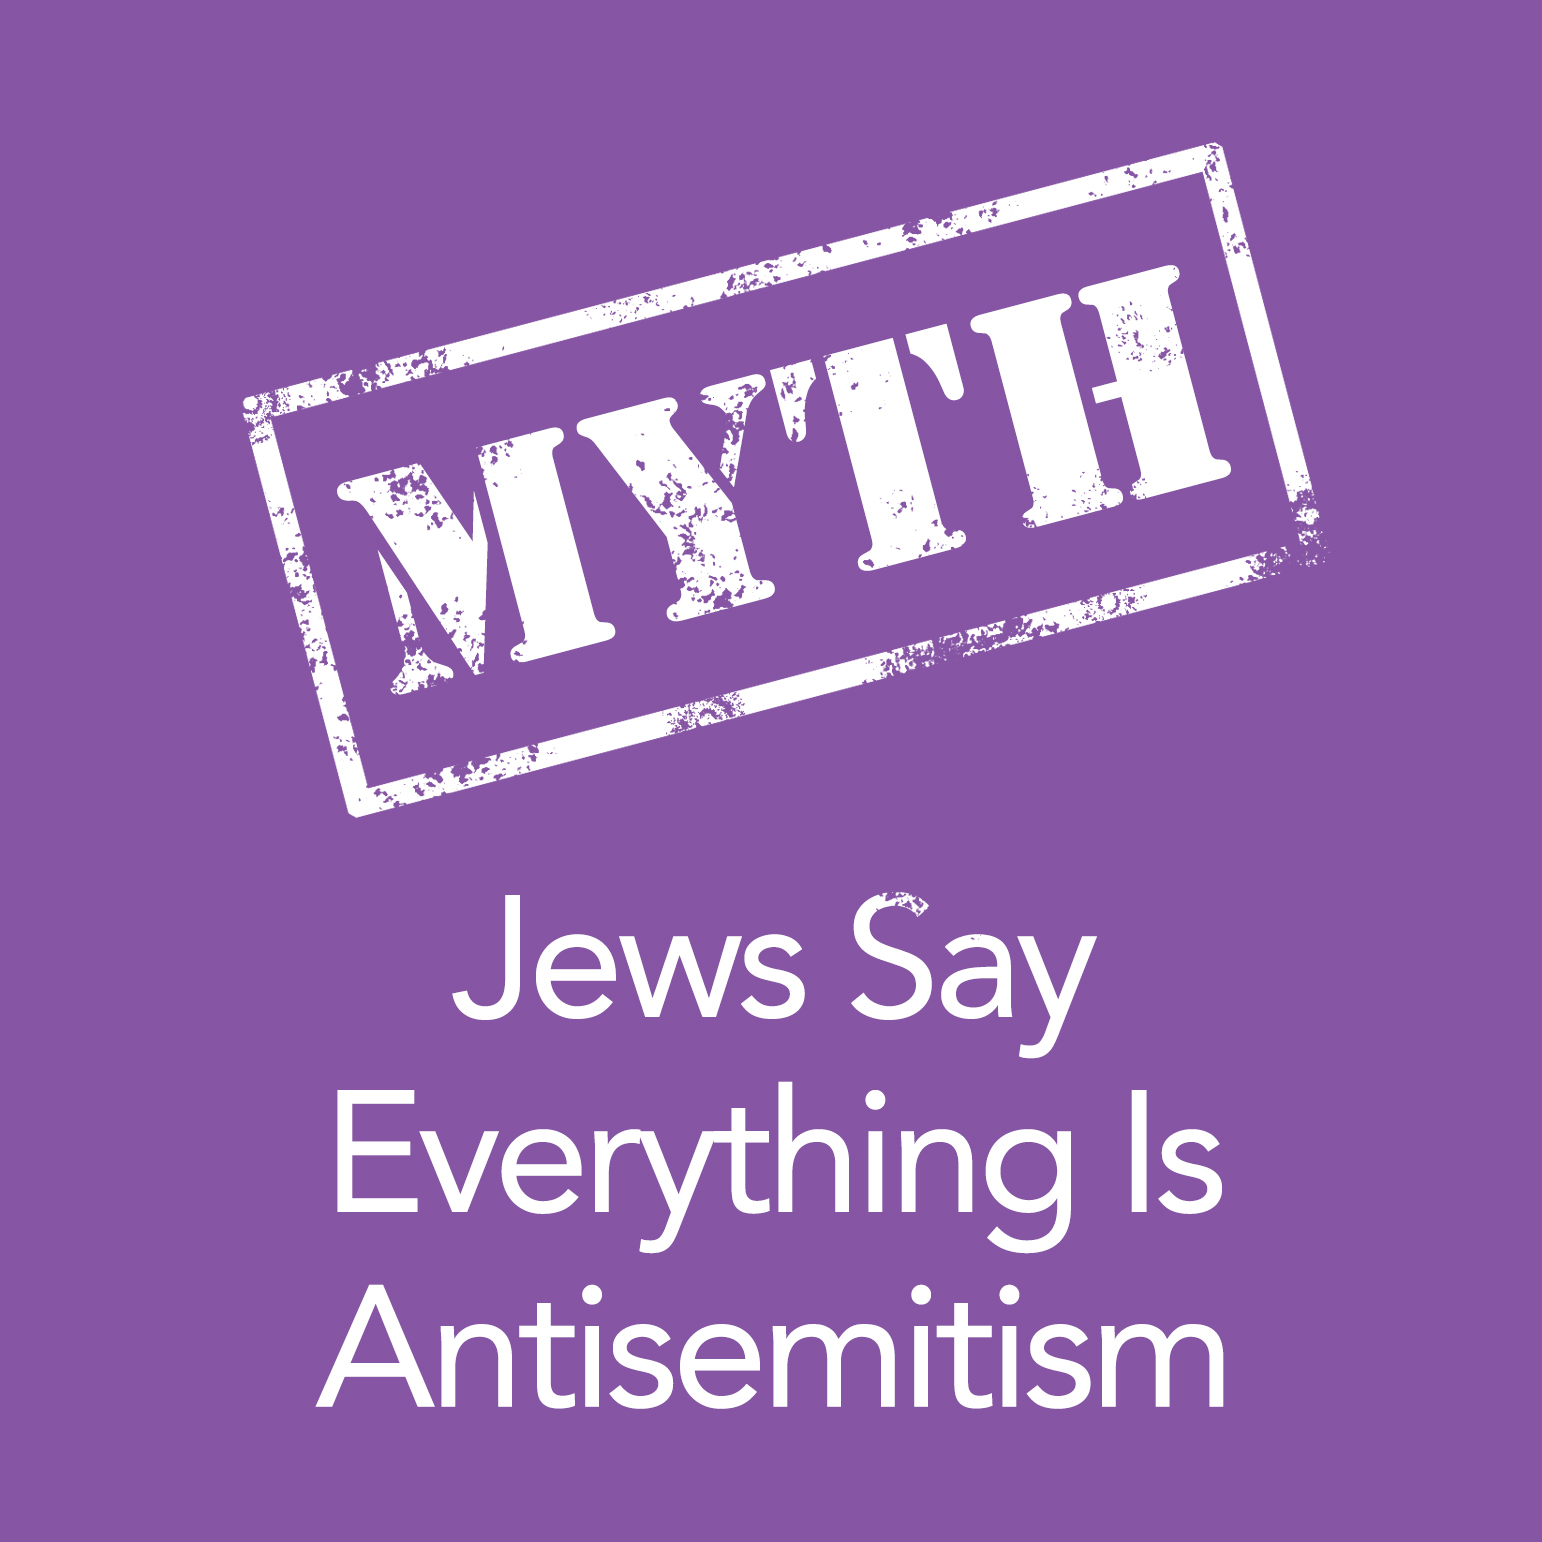 Jews Say Everything is Anti-Semitic